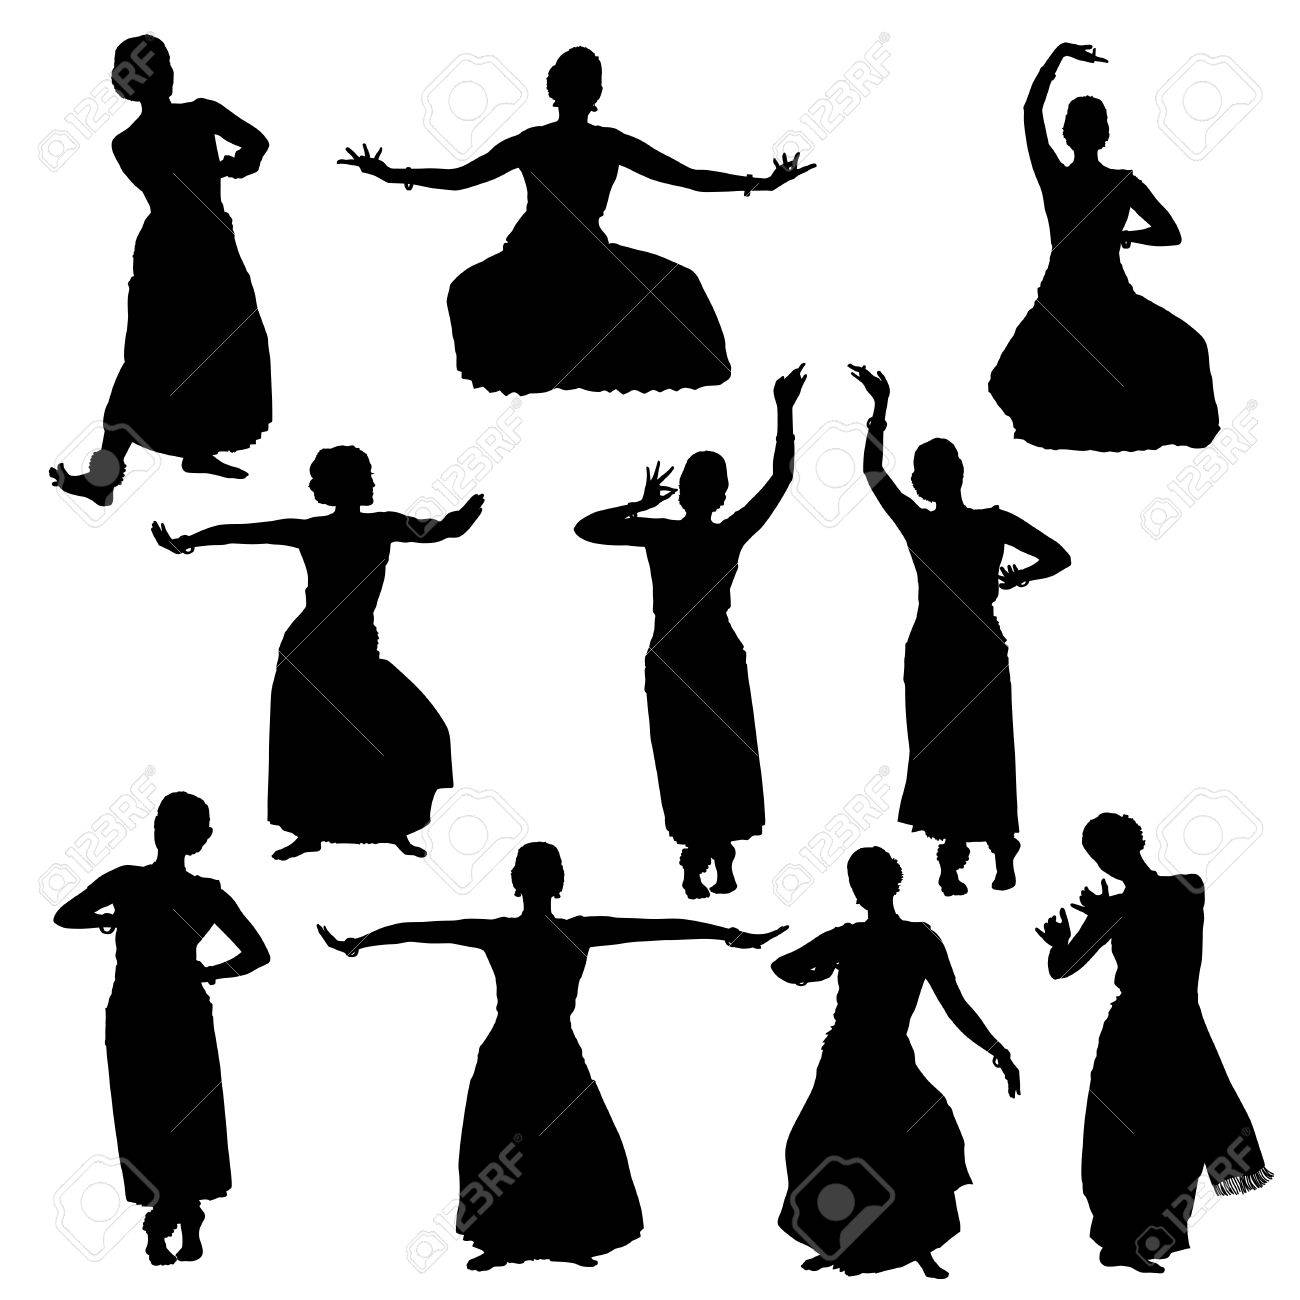 Silhouettes Of Woman Performing Indian Dance Bharatanatyam Royalty Free Cliparts Vectors And Stock Illustration Image 61593613